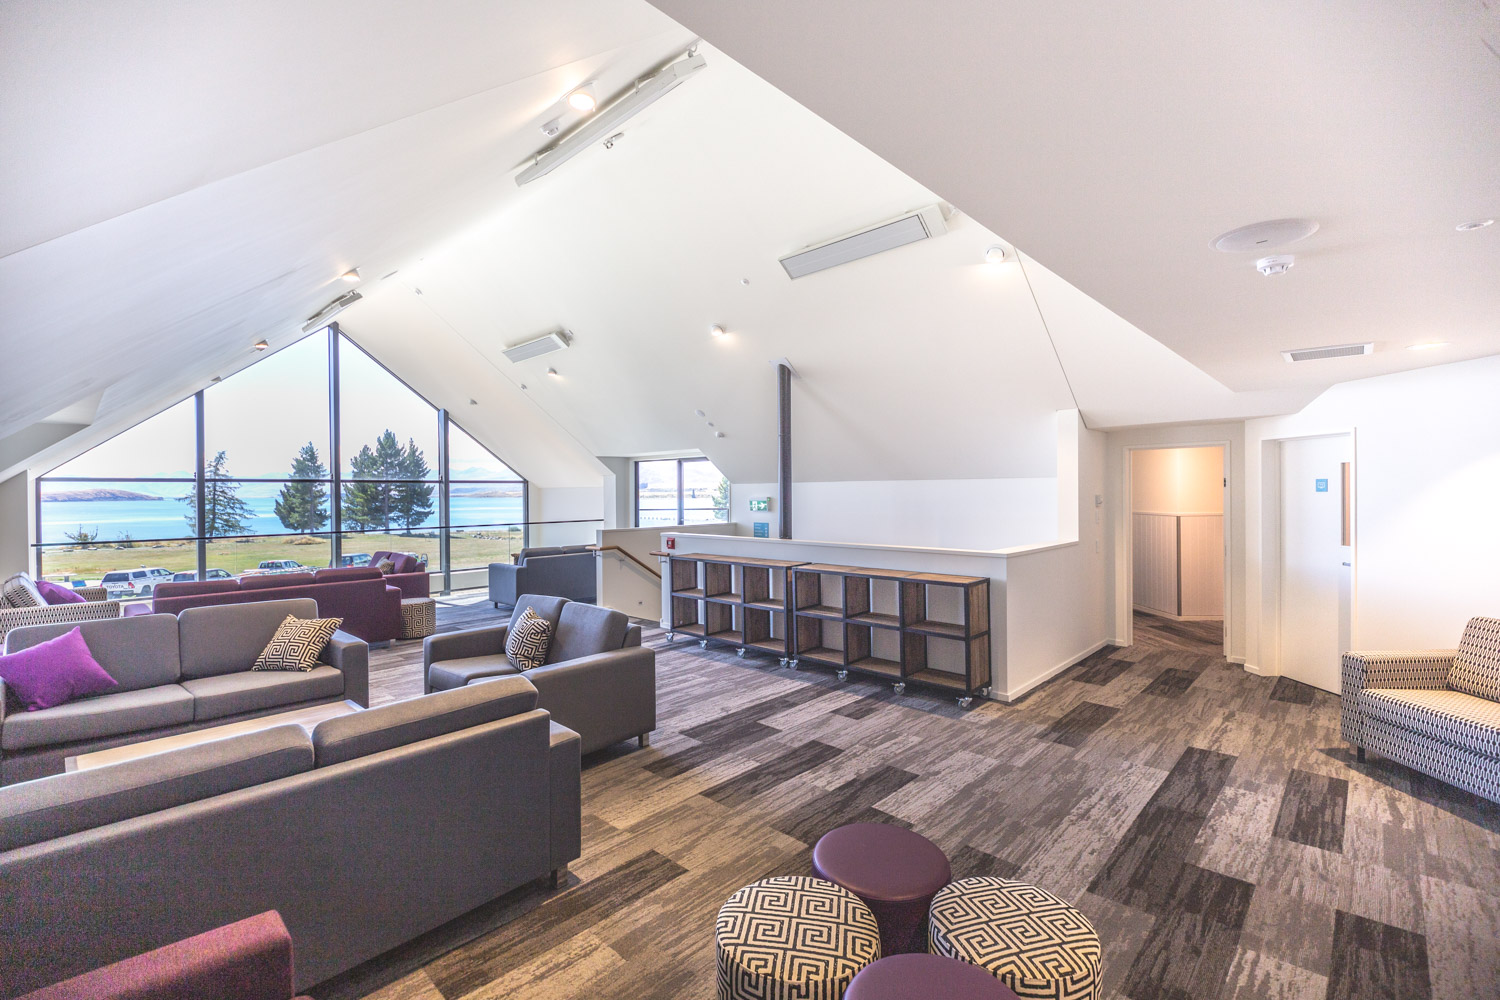 yha-lake-tekapo-interior-lounge-201903-dgpoi-017-lr-1500